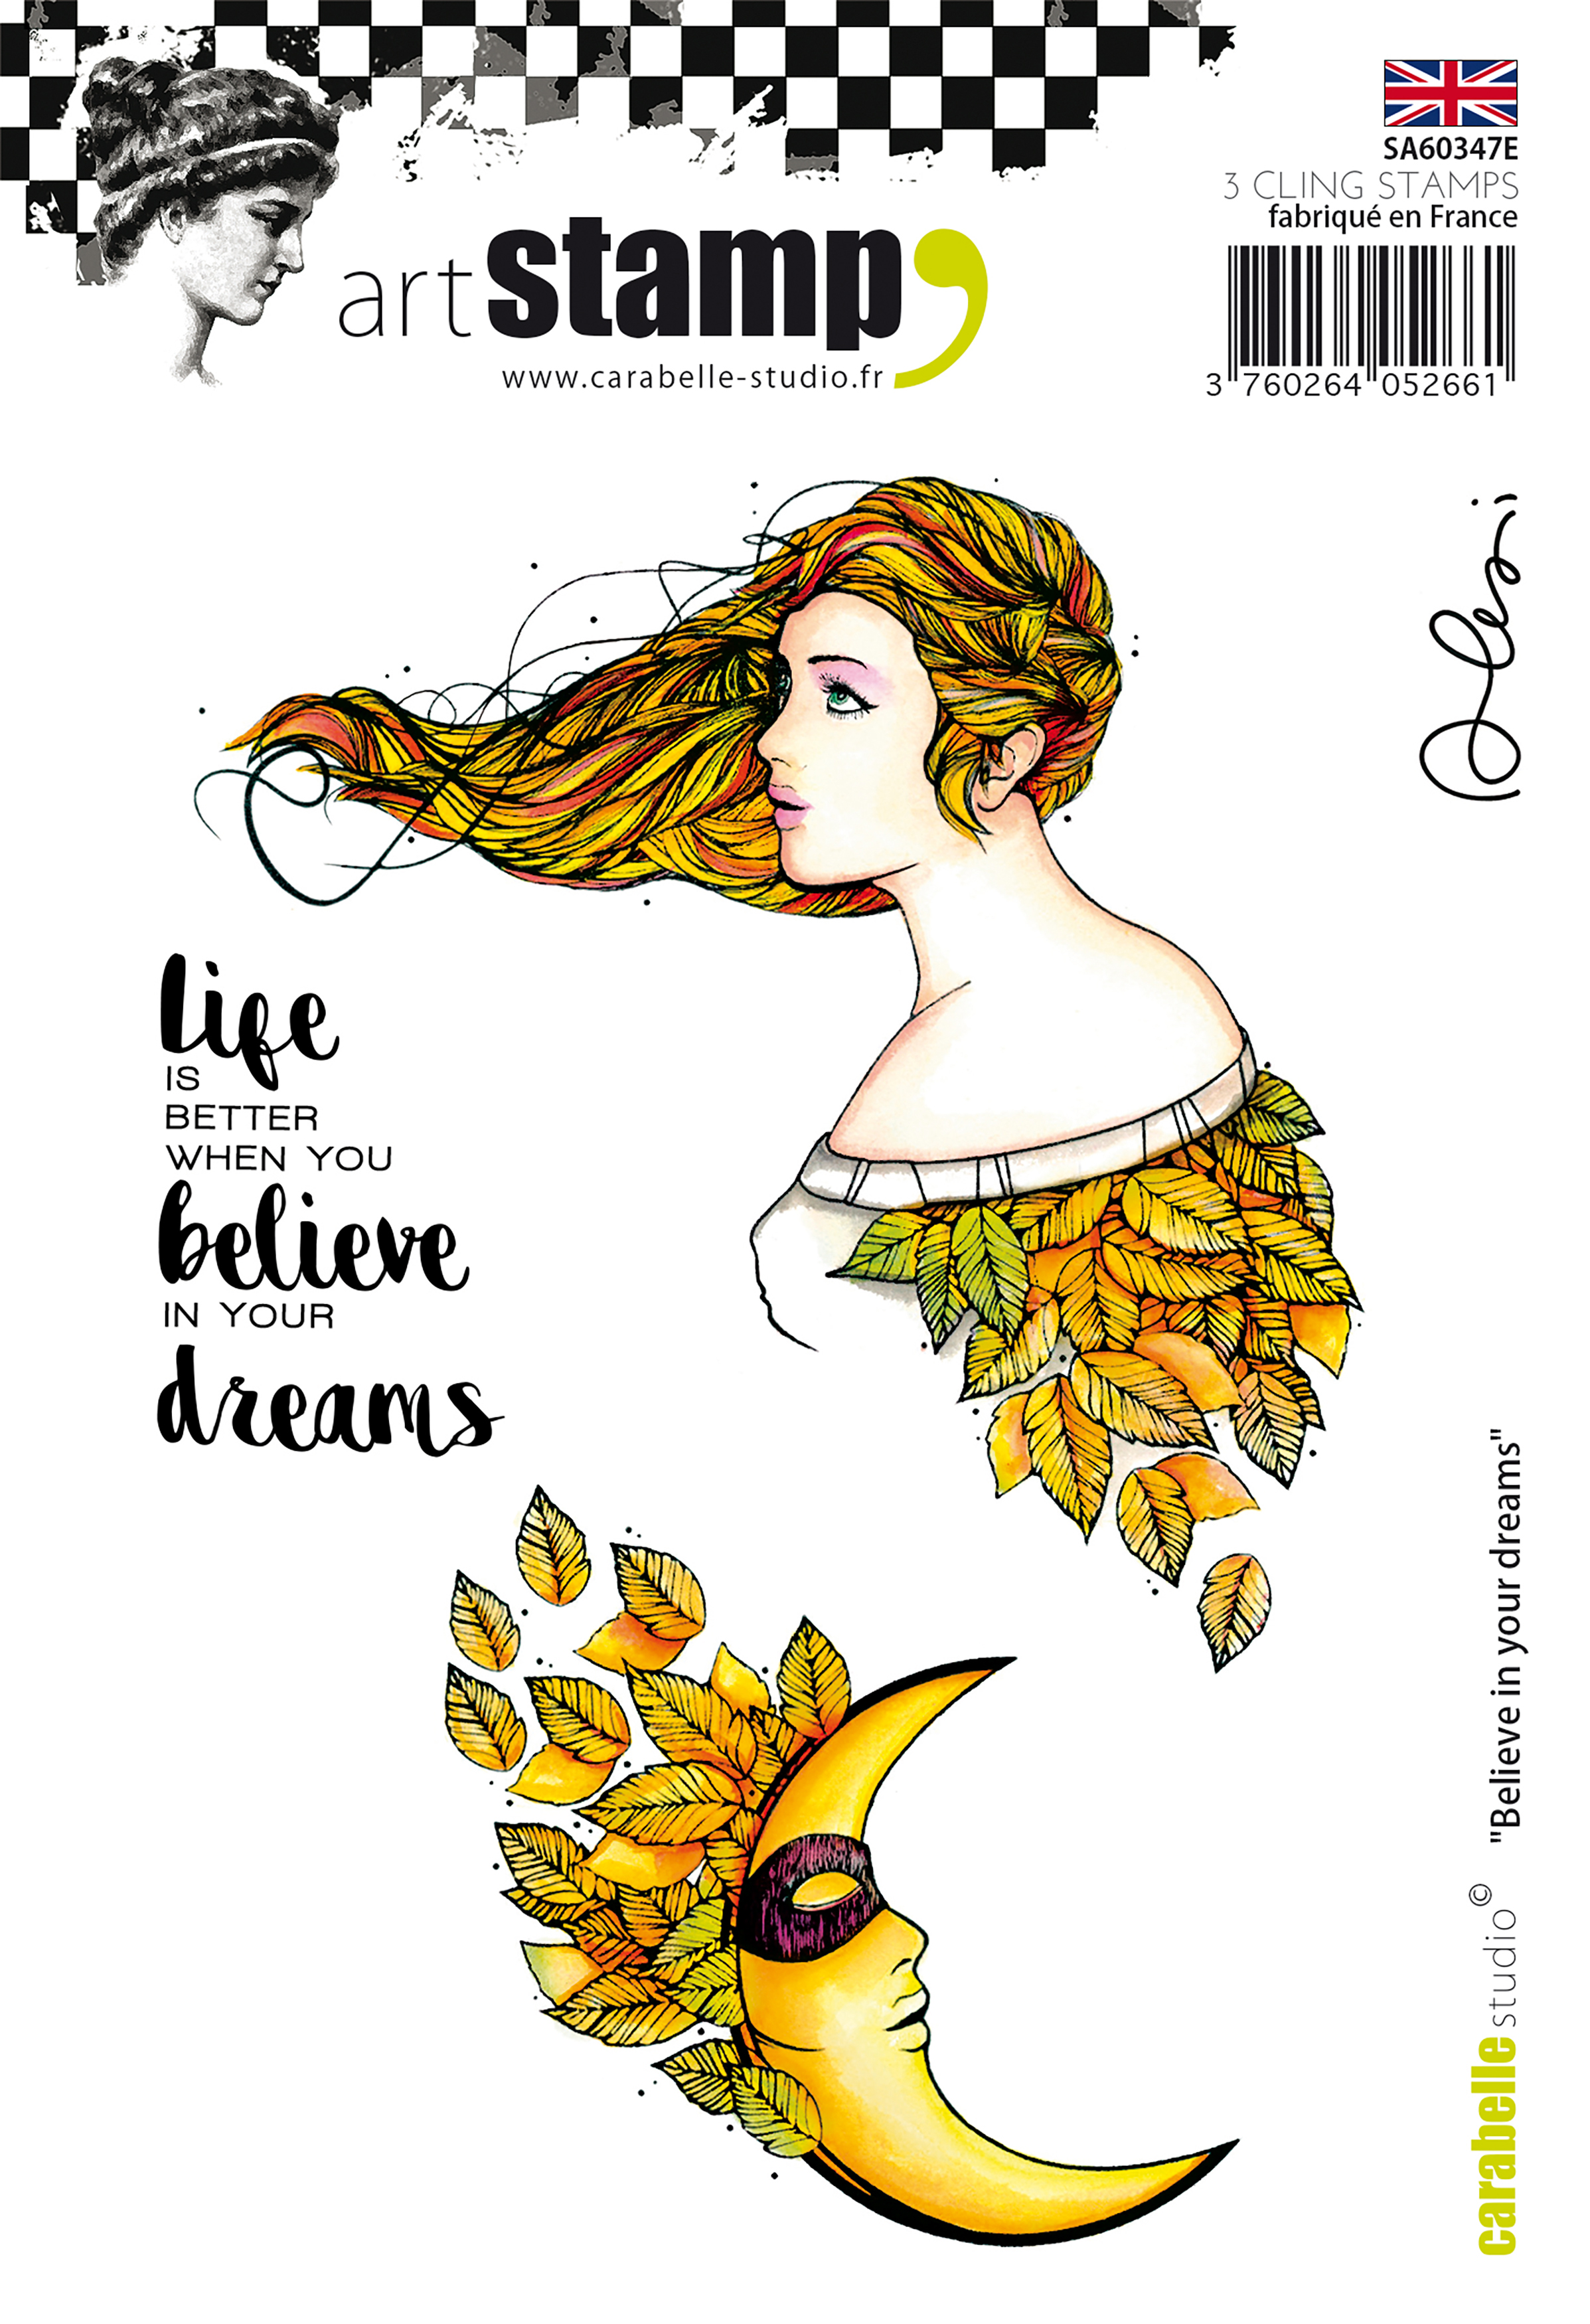 Believe In Your Dreams - Carabelle Studio Cling Stamp A6 By Alexis Toupet